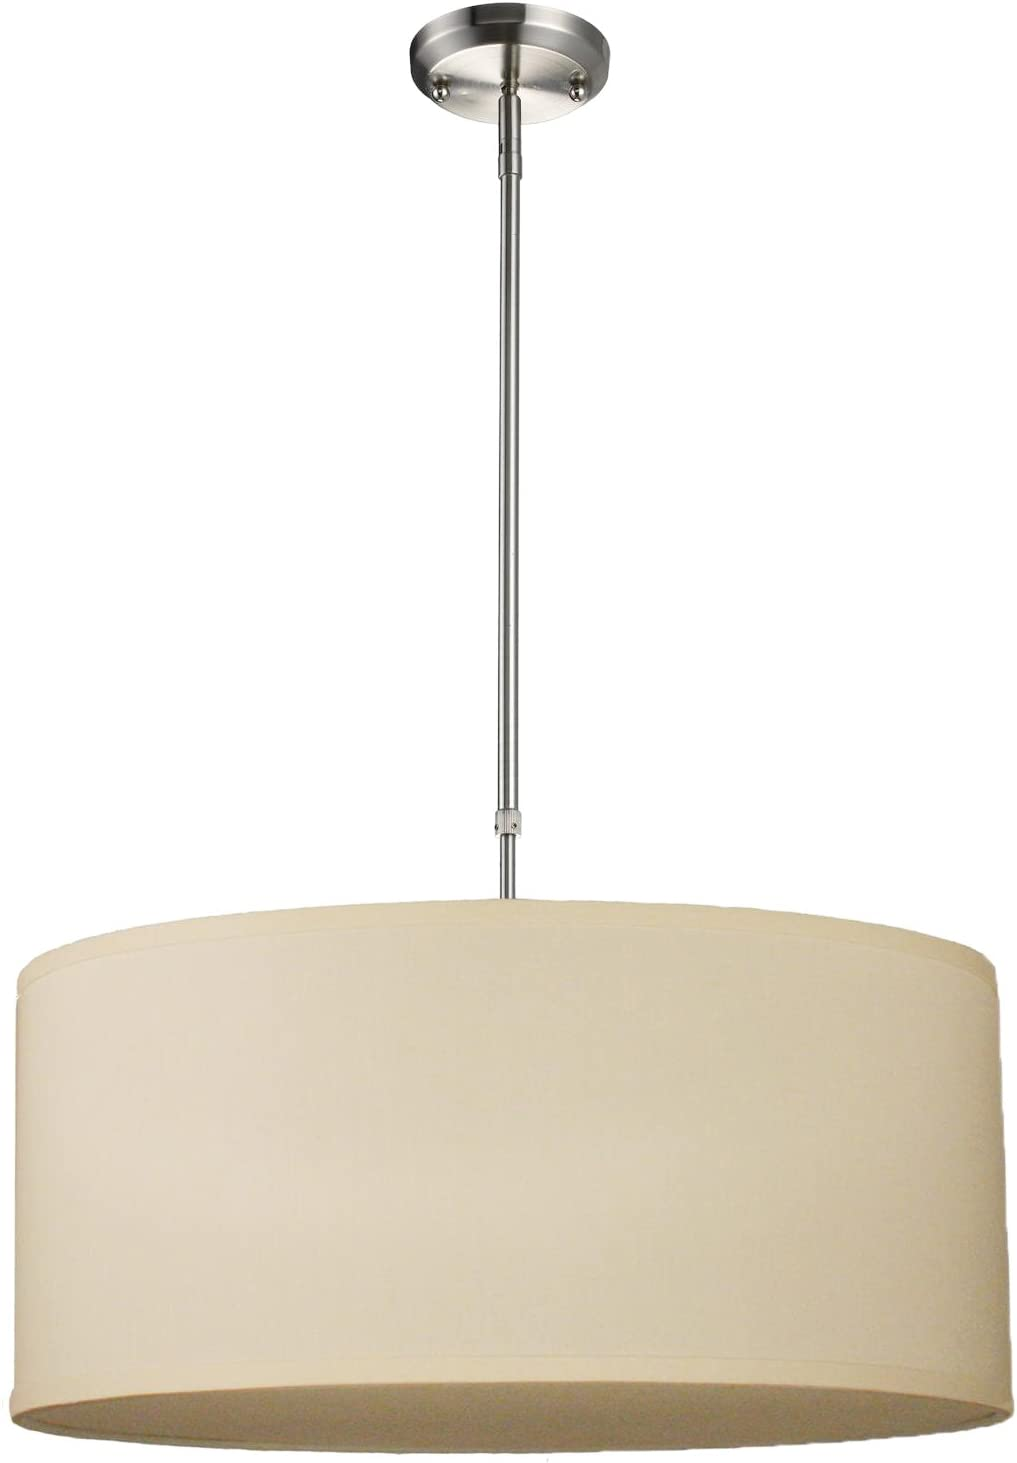 Z-Lite 171-24C-C Albion Three Light Pendant, Metal Frame, Brushed Nickel Finish and Off White Linen Fabric Shade of Fabric Material